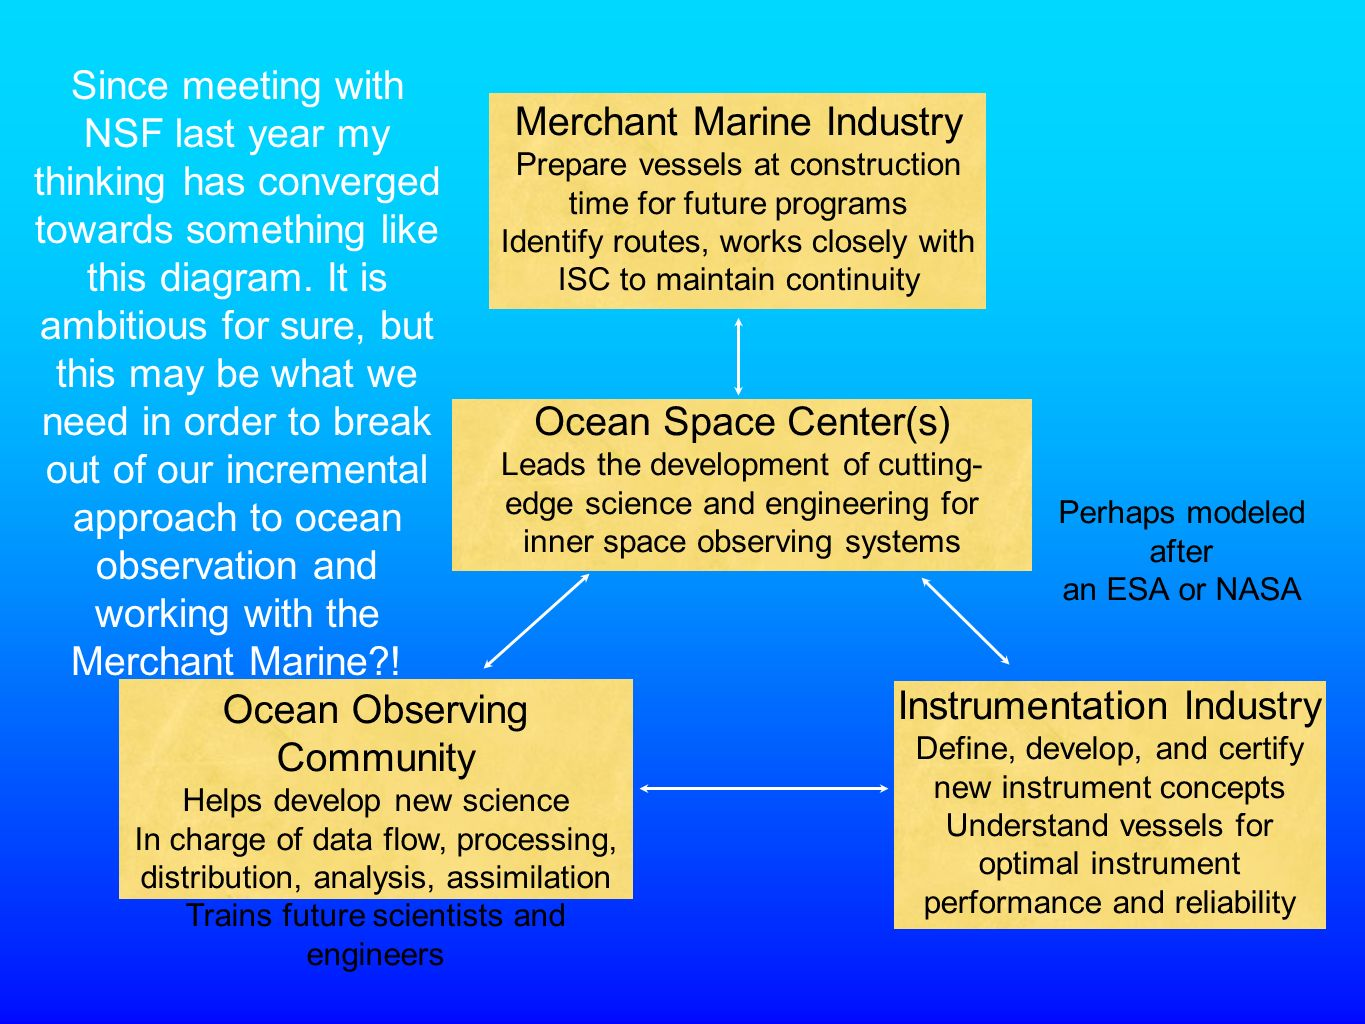 Merchant Marine Industry Prepare vessels at construction time for future programs Identify routes, works closely with ISC to maintain continuity Ocean Observing Community Helps develop new science In charge of data flow, processing, distribution, analysis, assimilation Trains future scientists and engineers Instrumentation Industry Define, develop, and certify new instrument concepts Understand vessels for optimal instrument performance and reliability Ocean Space Center(s) Leads the development of cutting- edge science and engineering for inner space observing systems Since meeting with NSF last year my thinking has converged towards something like this diagram.